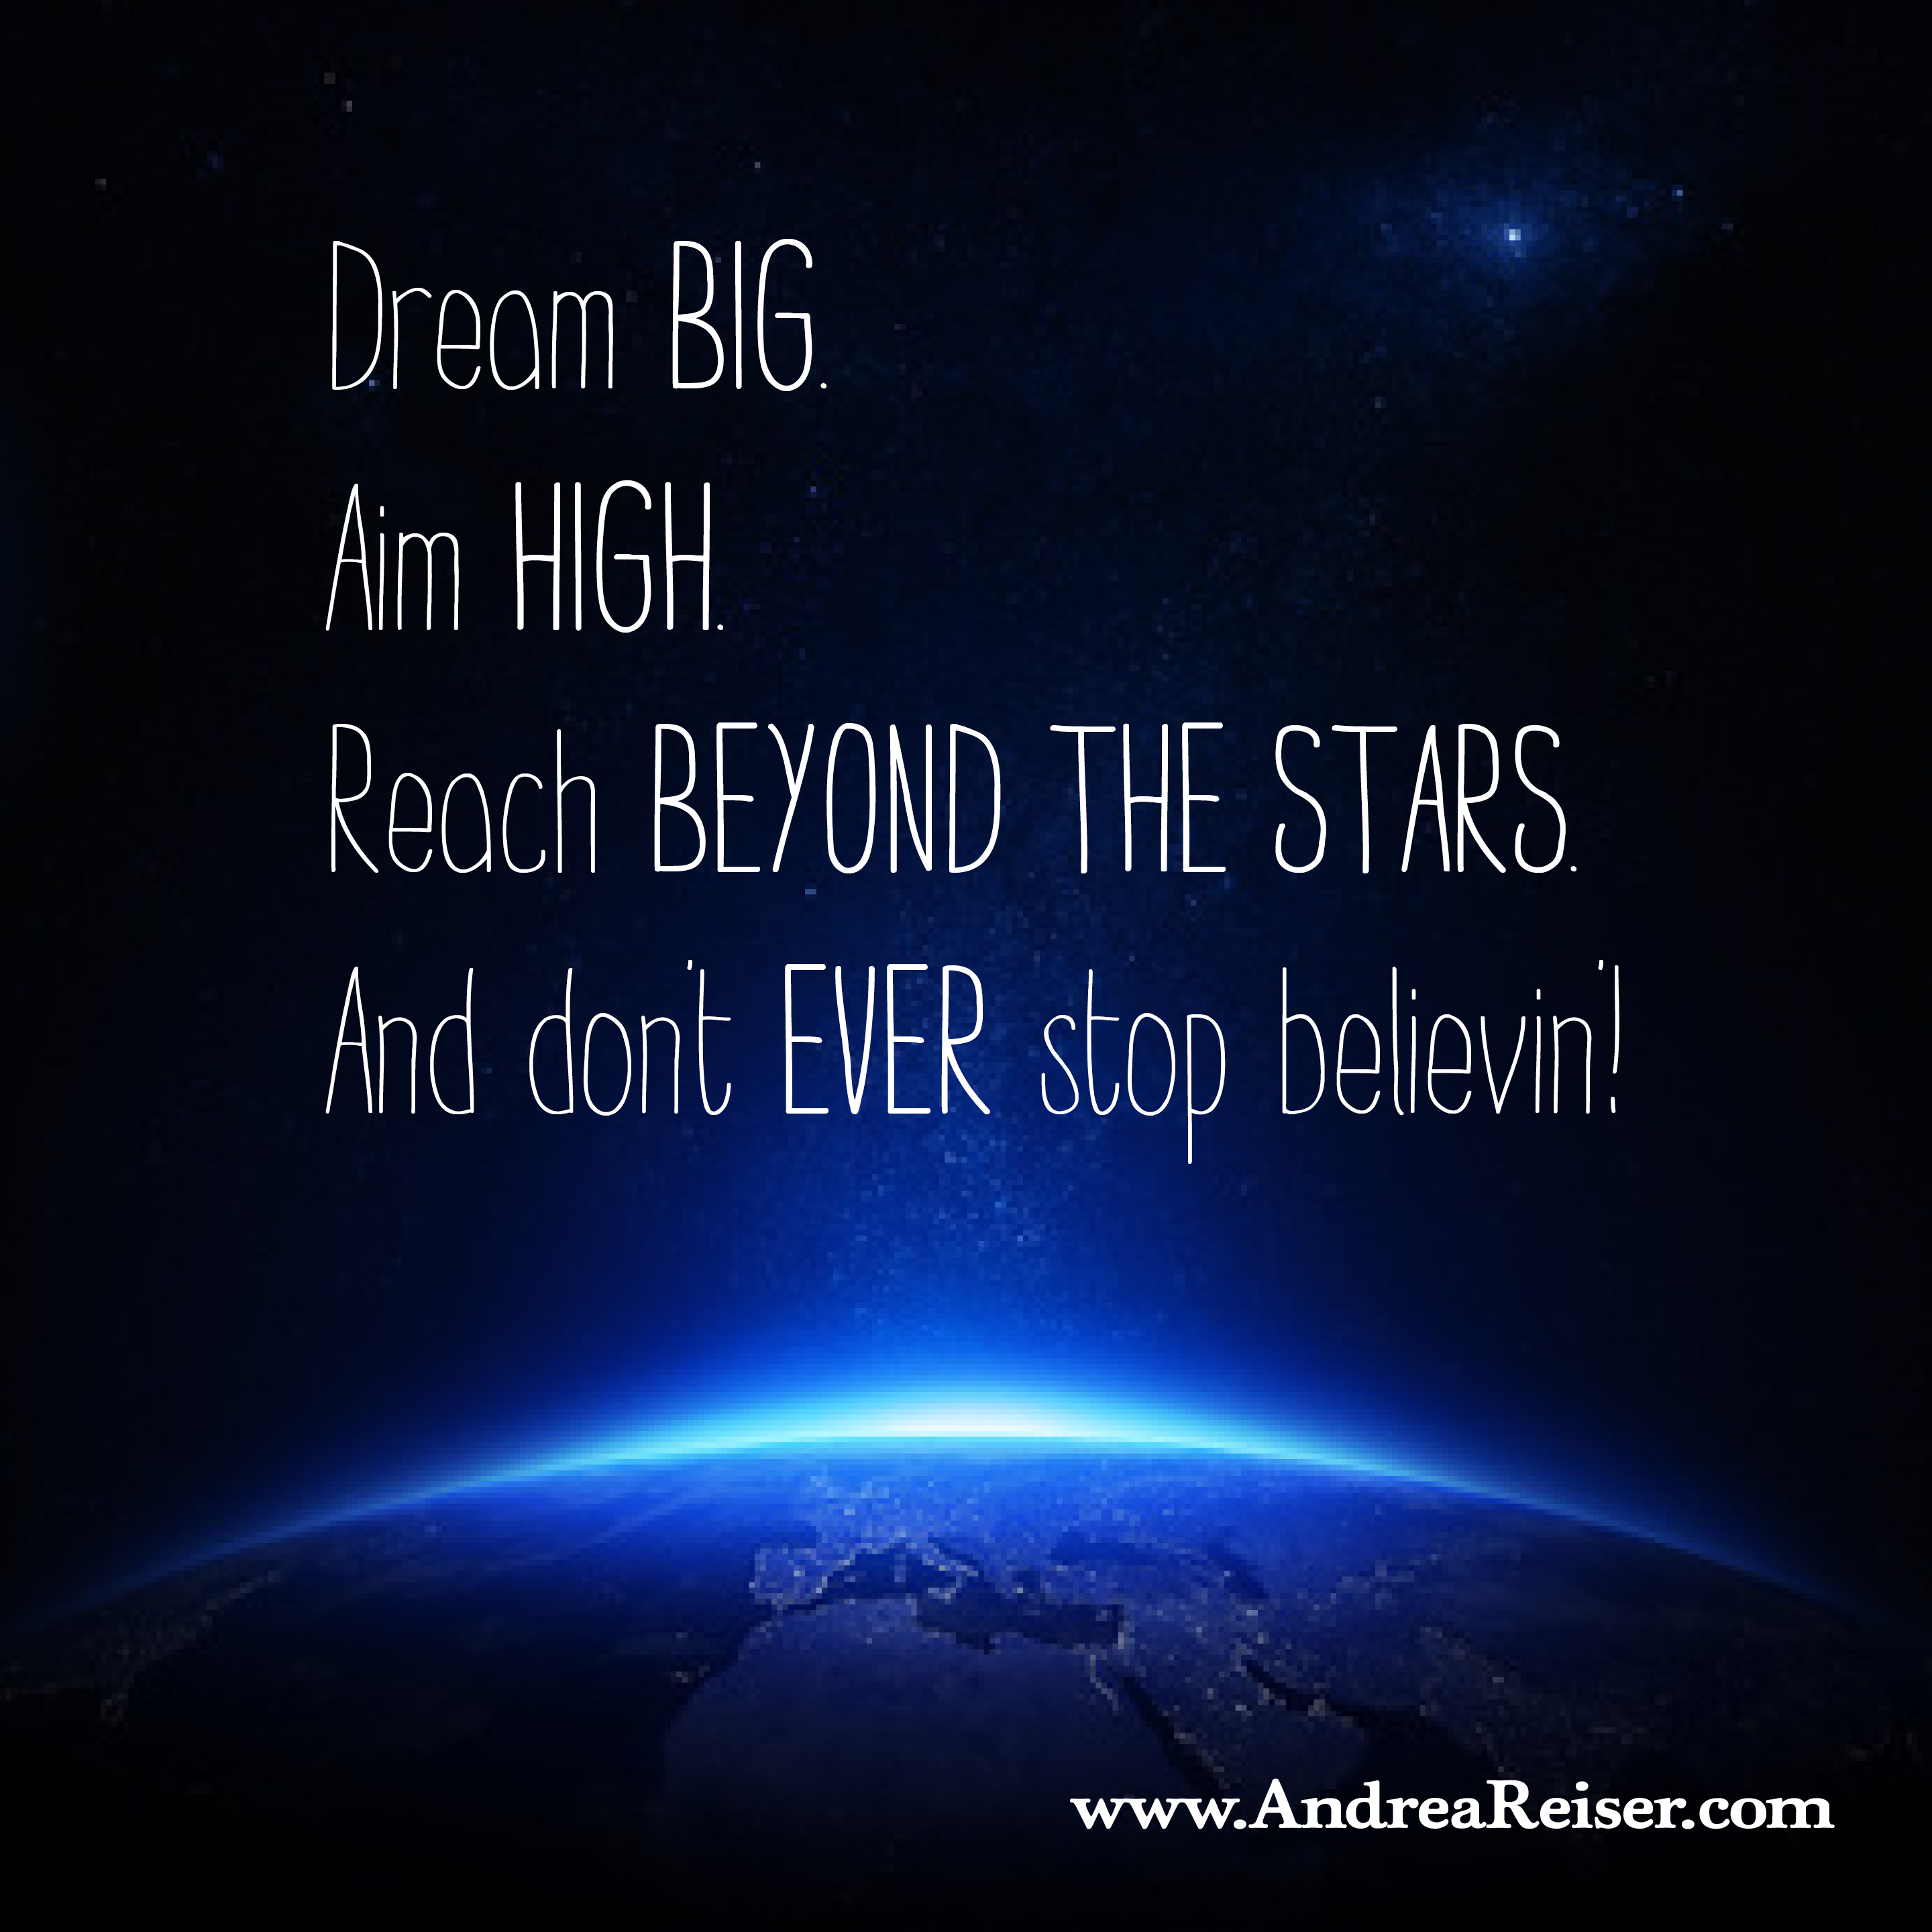 Dream BIG. Aim HIGH. And don't EVER stop believin ...